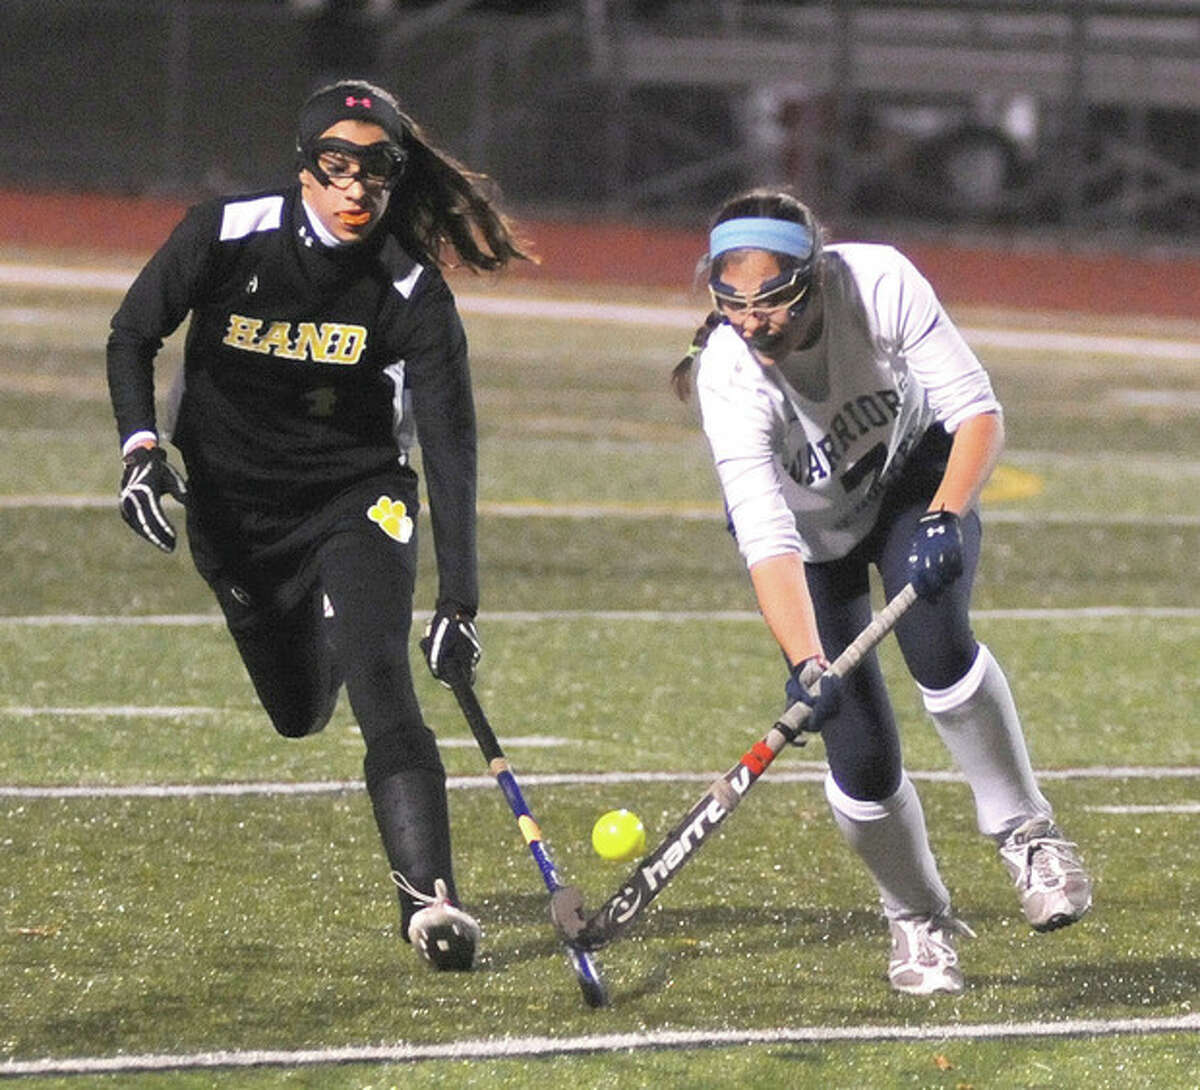 Hour photo/John Nash Annie Cornbooks of Wilton, right, gets to the ball ahead of a Daniel Hand player during Tuesday's Class M semifinal in Cheshire.